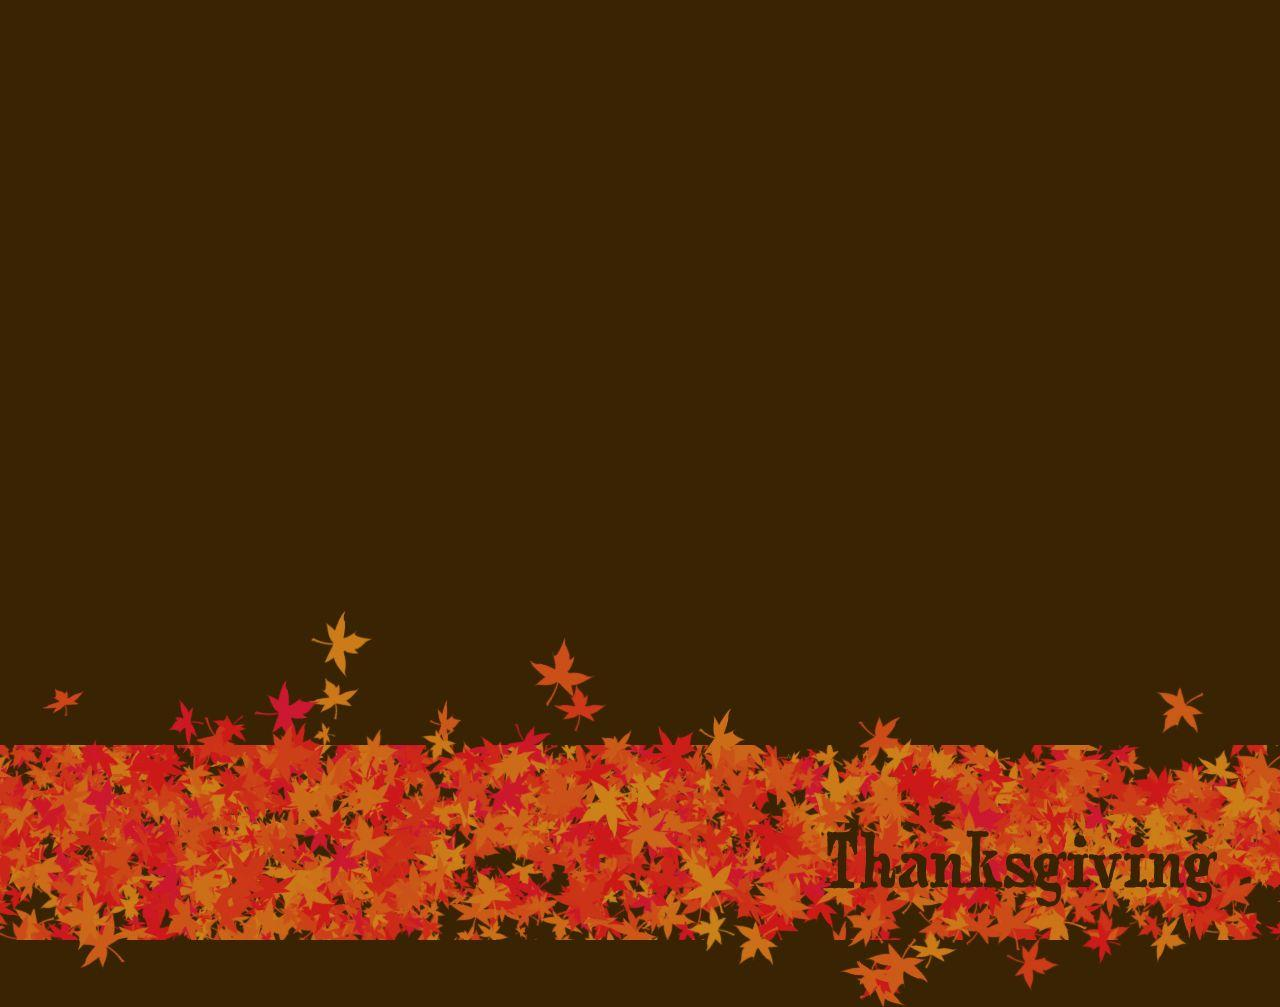 Thanksgiving Background #6813180